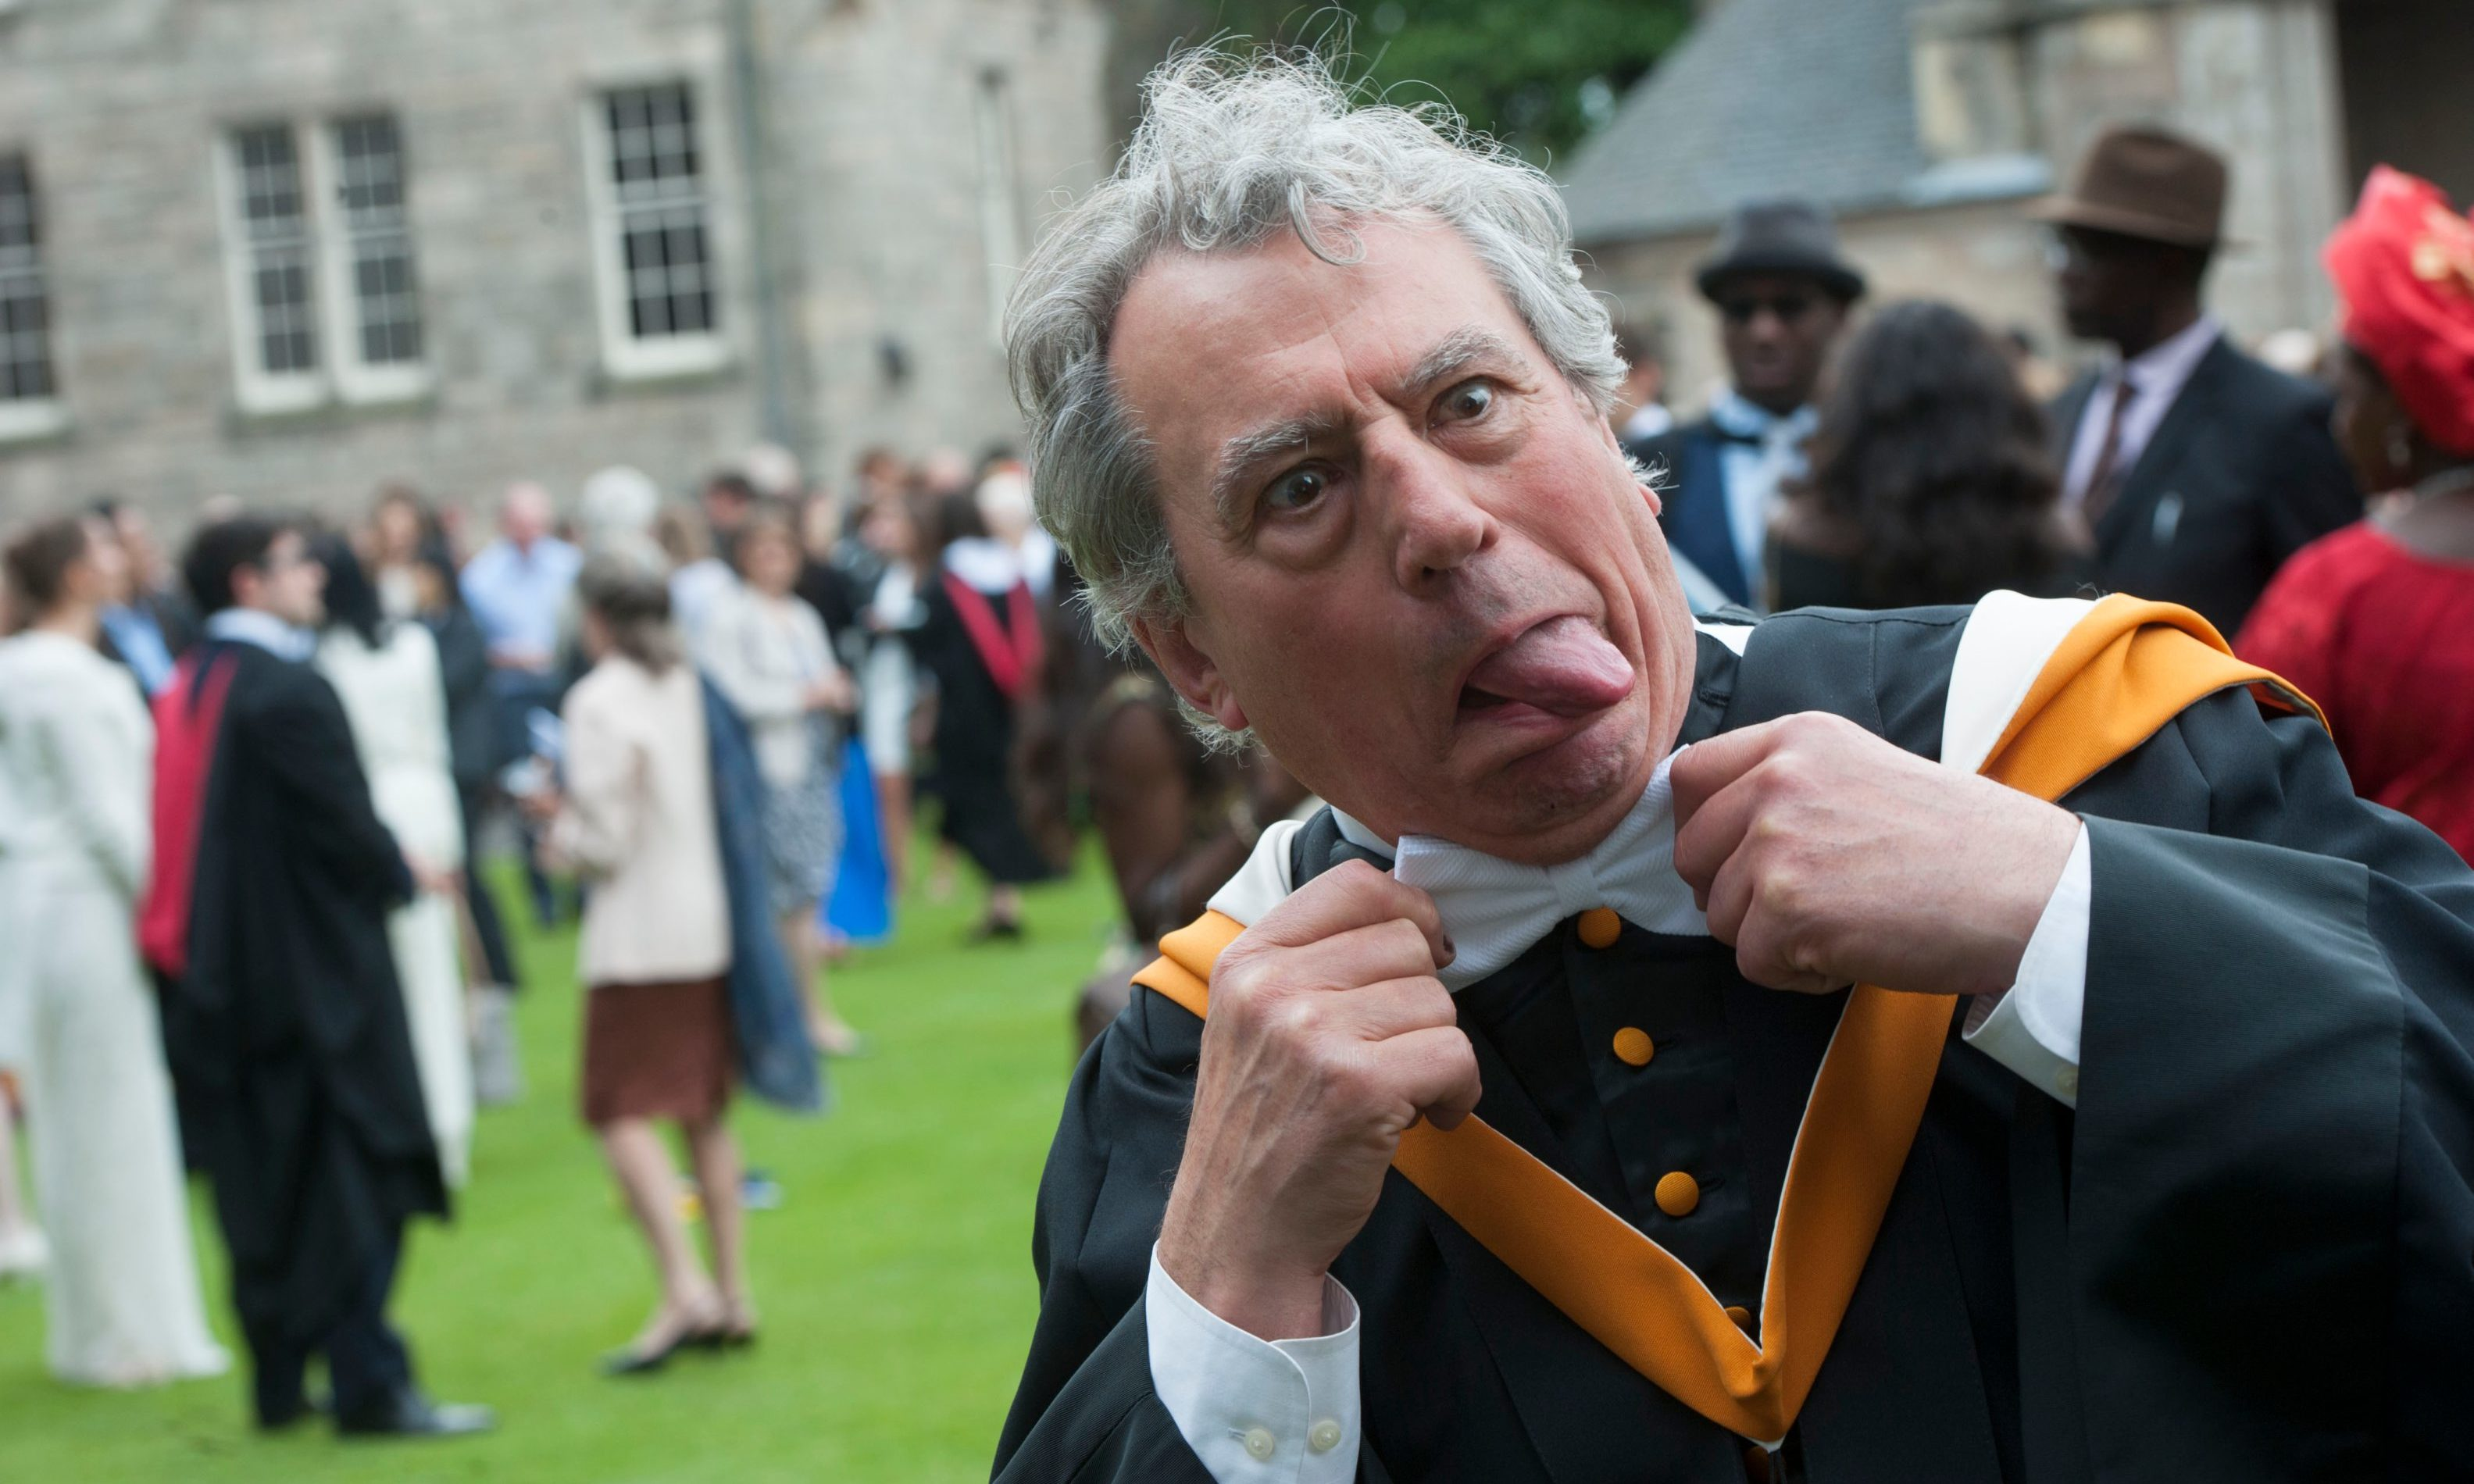 Terry Jones of Monty Python fame was awarded an degree by the University of St Andrews as part of their 600 year celebrations.